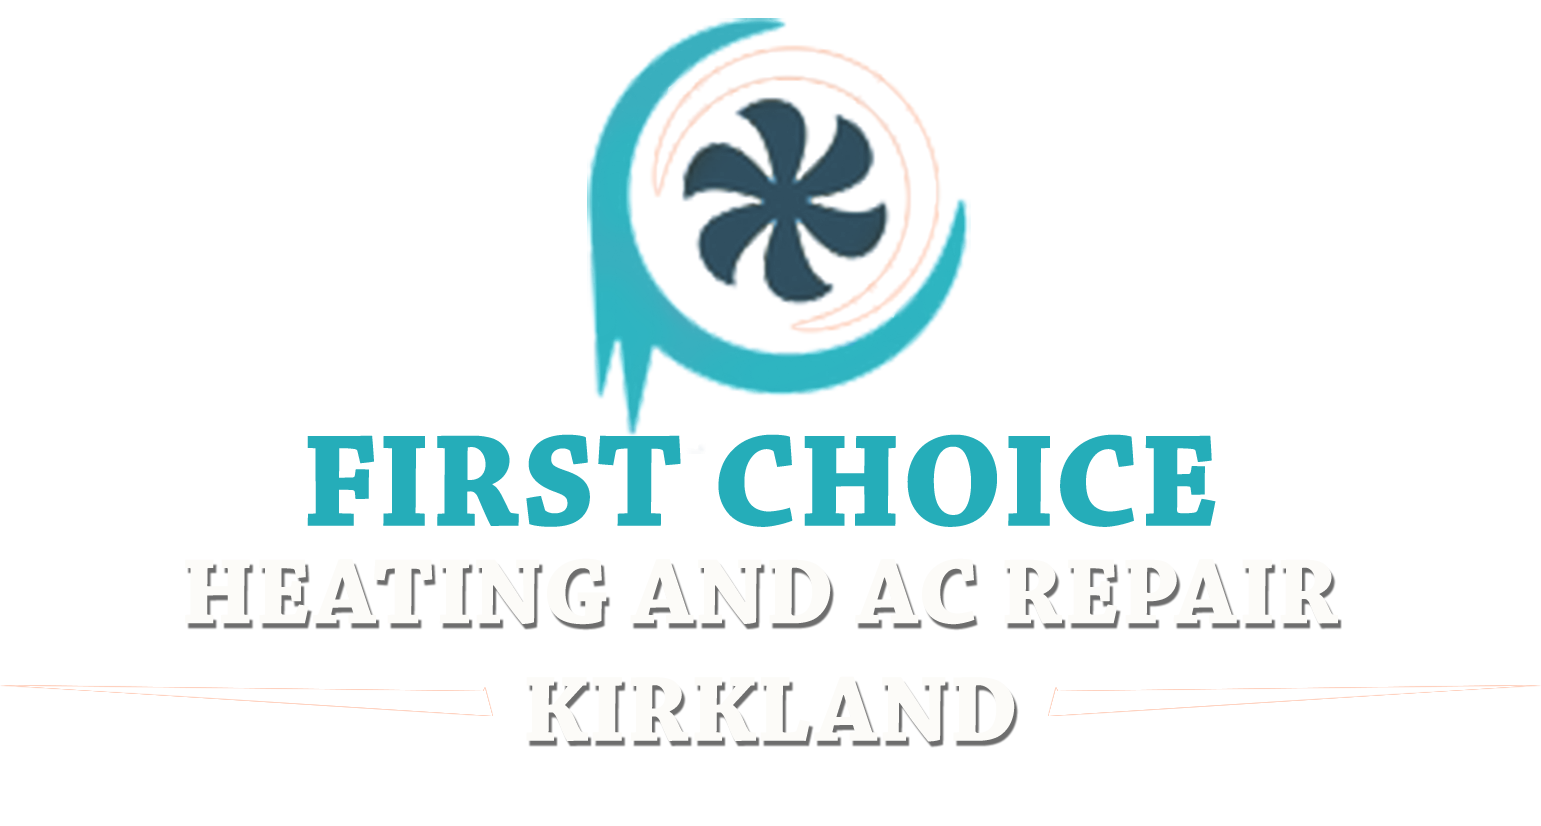 Looking For Air Conditioning Technicians In Kirkland First Choice Heating And Ac Repair Kirkland Provides Excellent